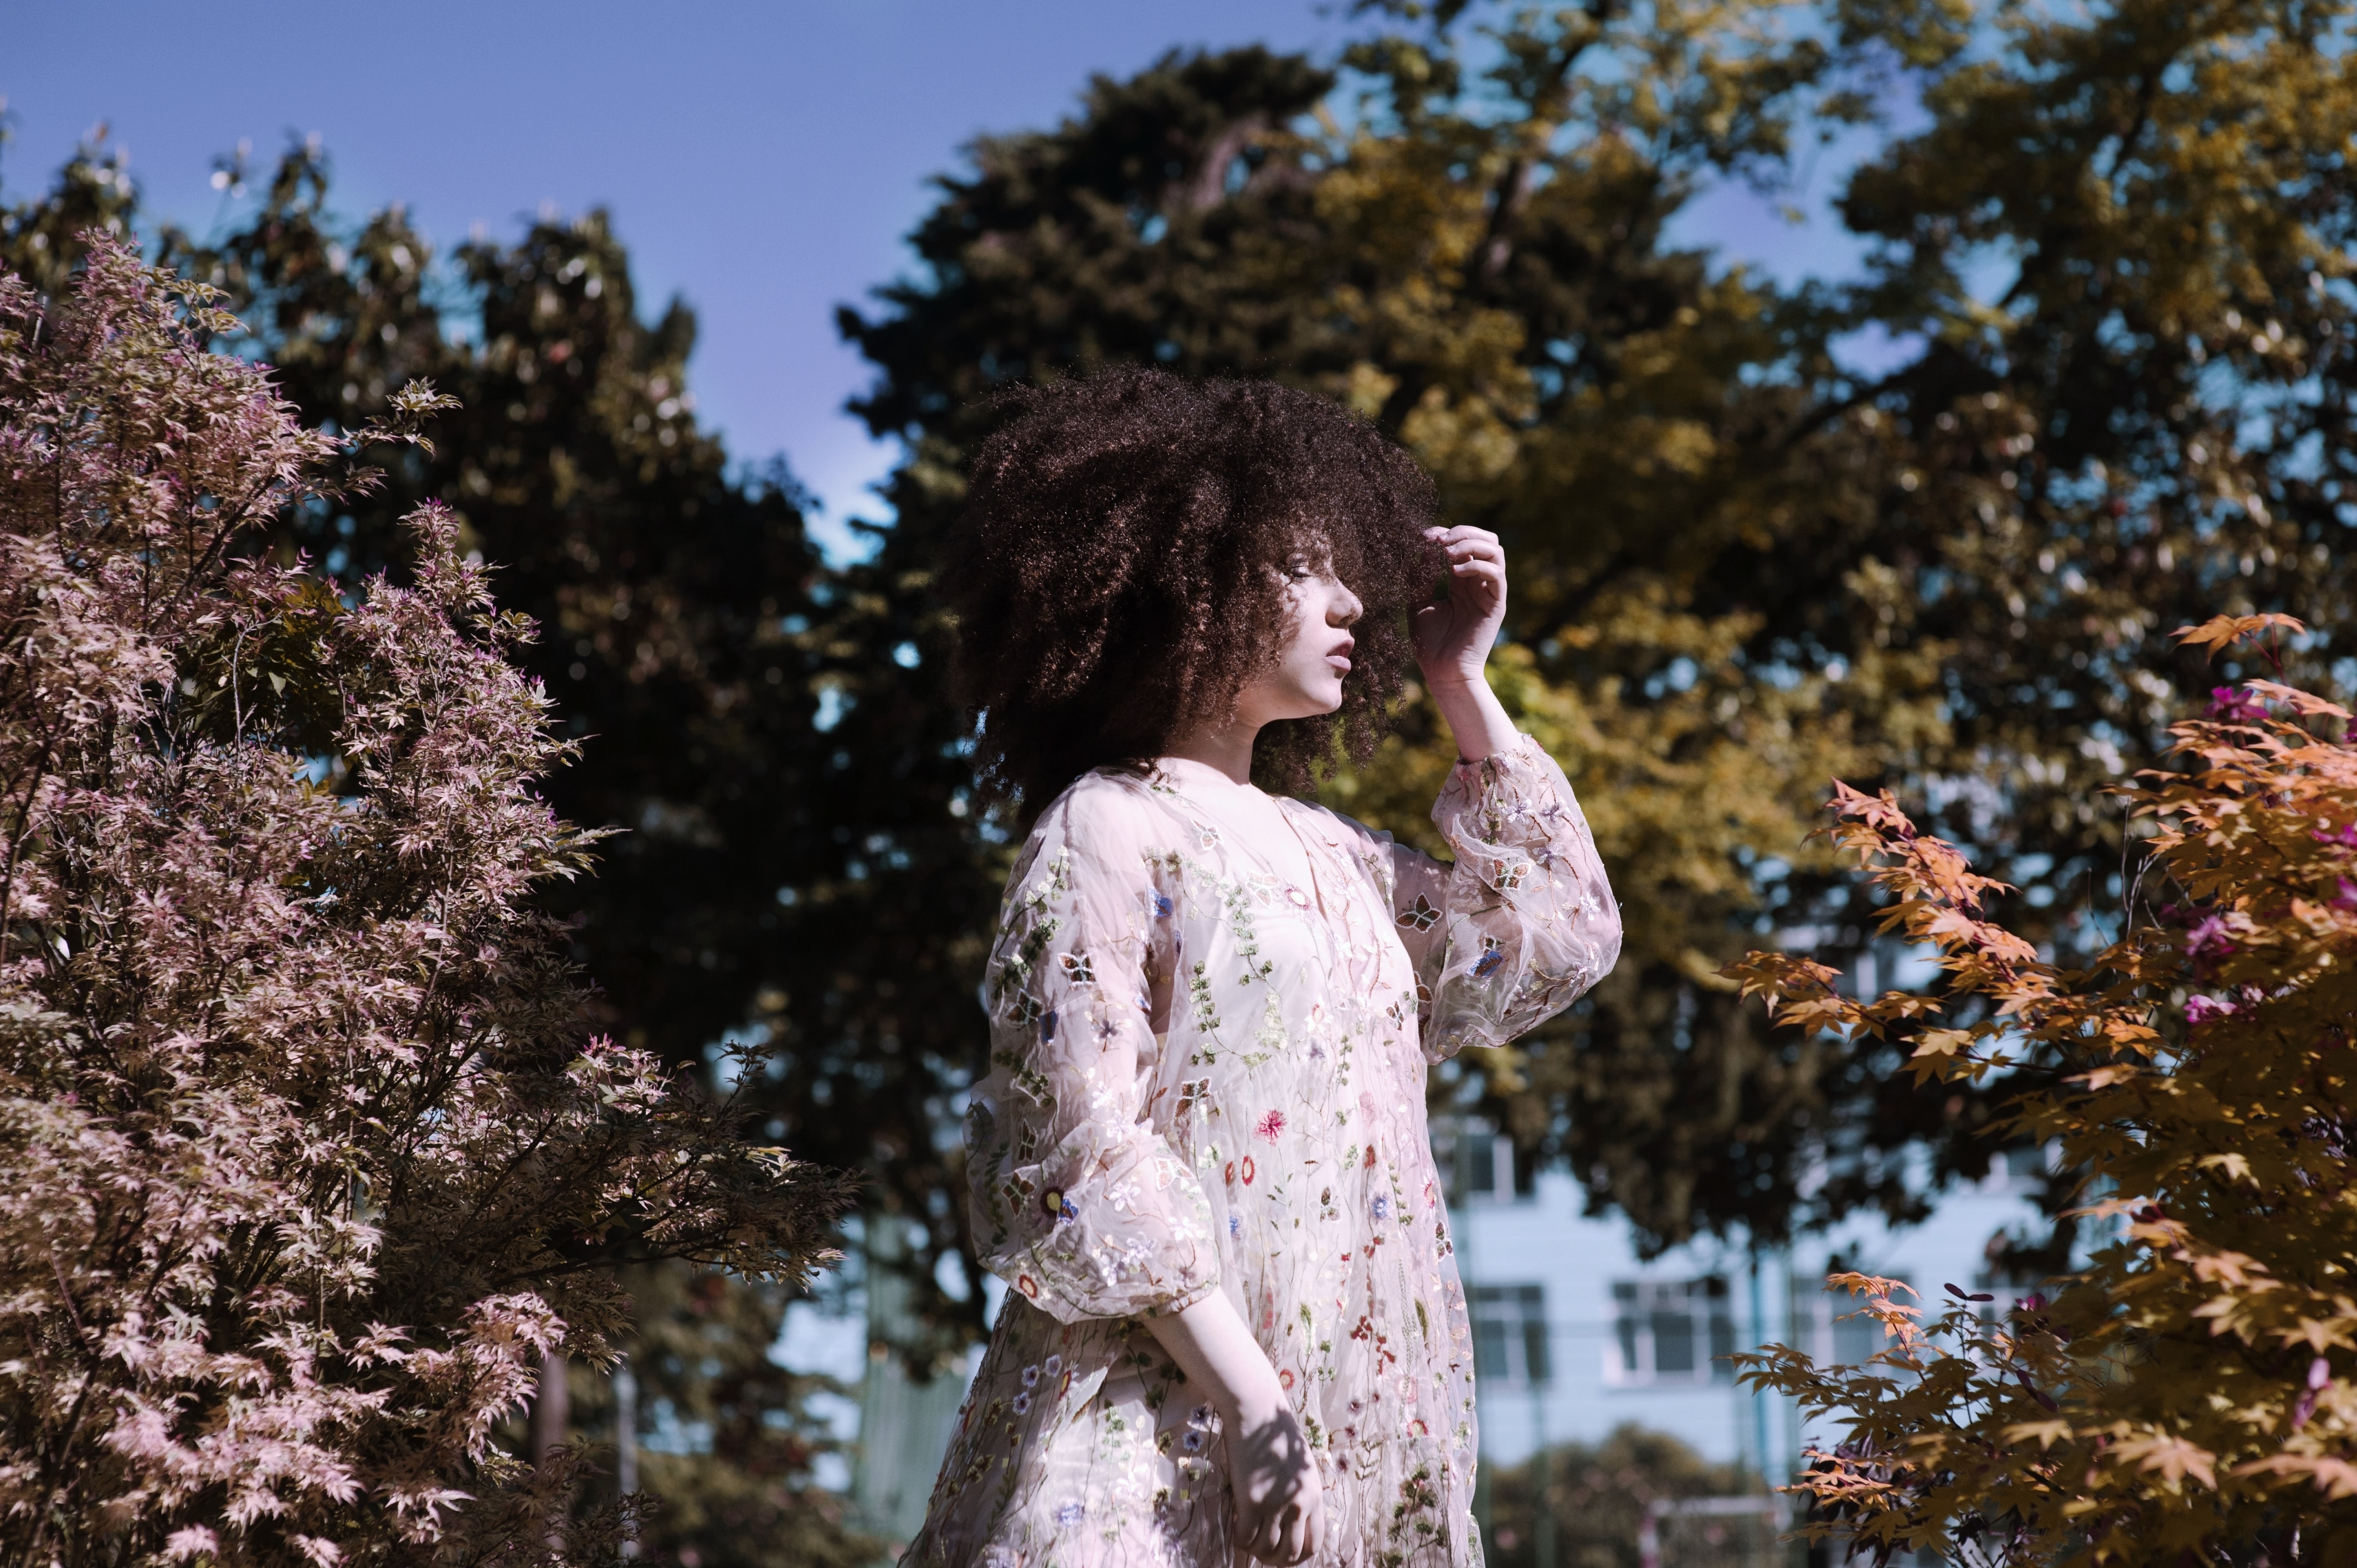 woman standing near trees during daytime